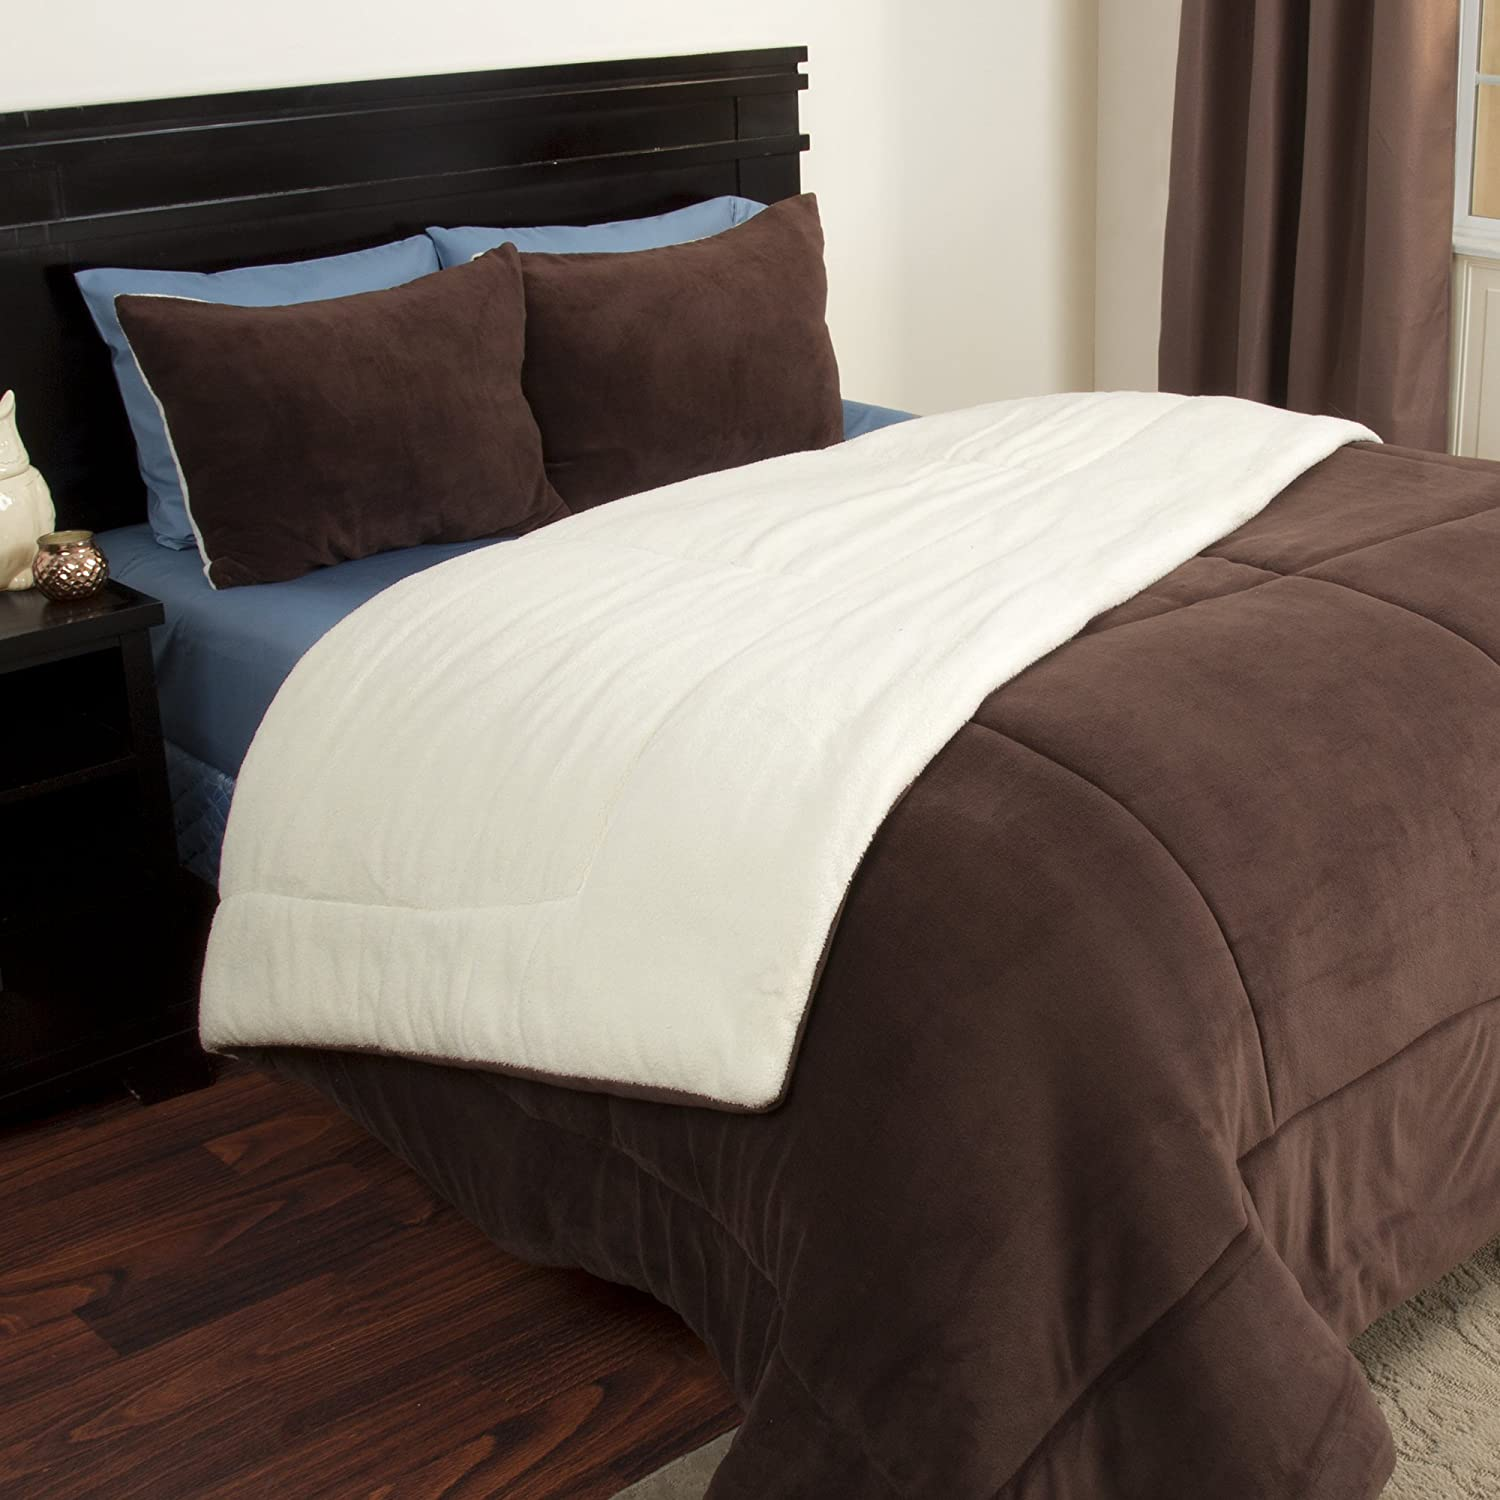 Lavish Home 3 Piece Sherpa/Fleece Comforter Set - King - Chocolate